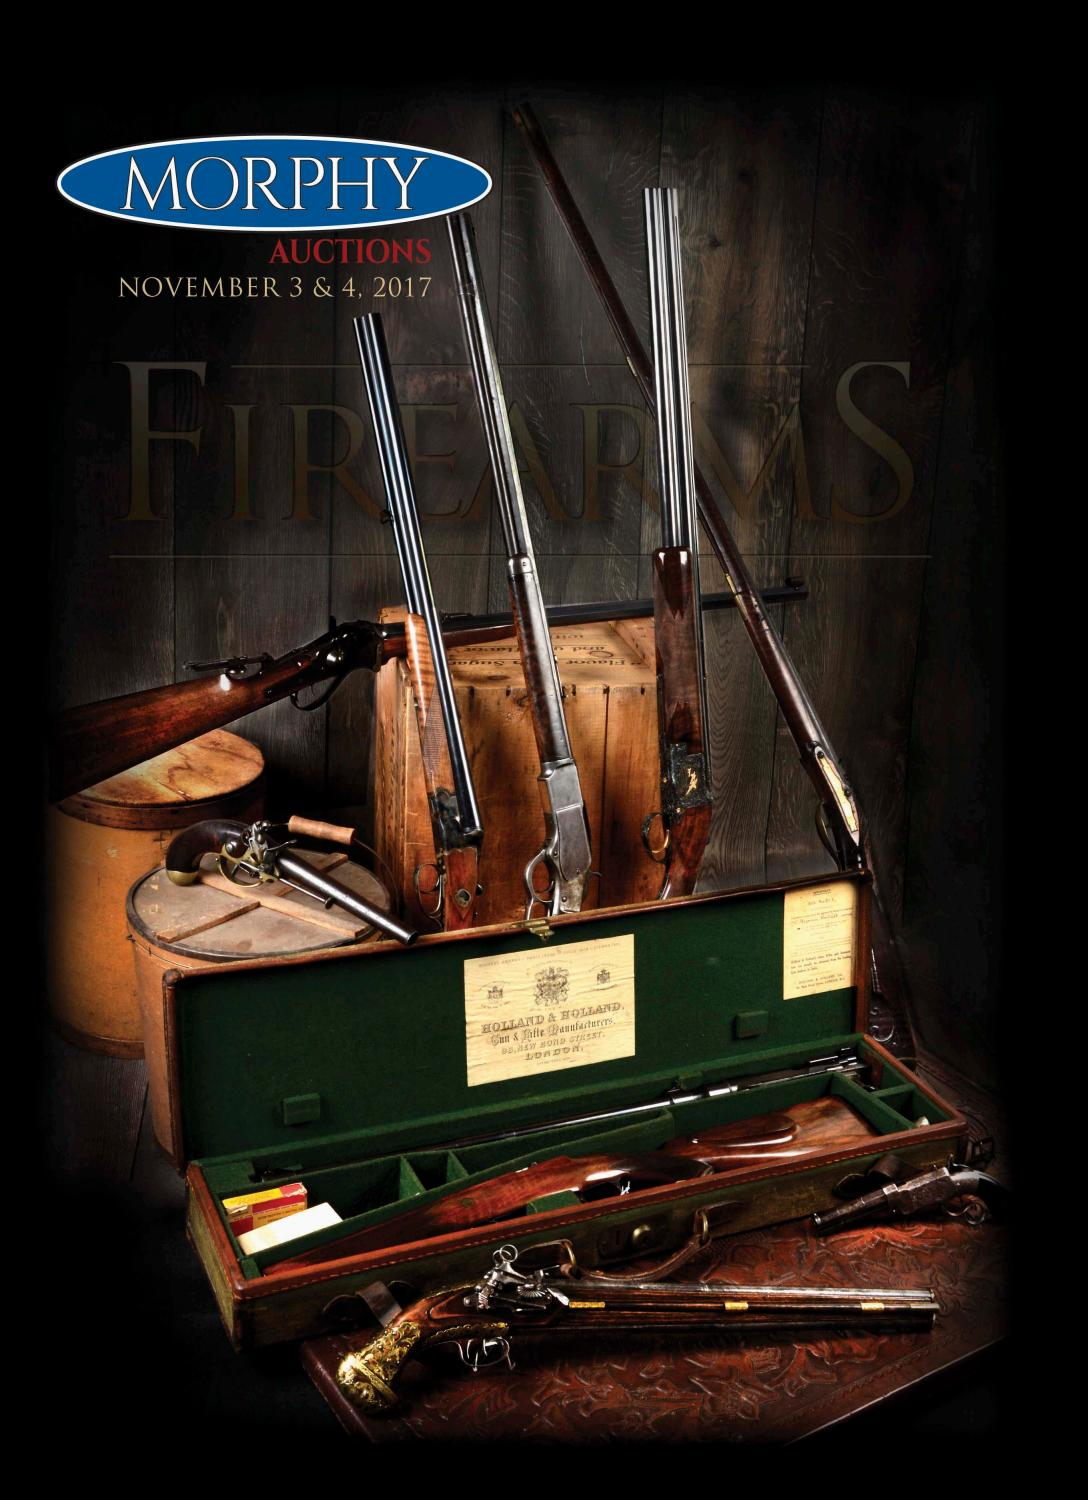 2d9a50a57aa4ea 2017 November 3-4 Firearms by Morphy Auctions - issuu